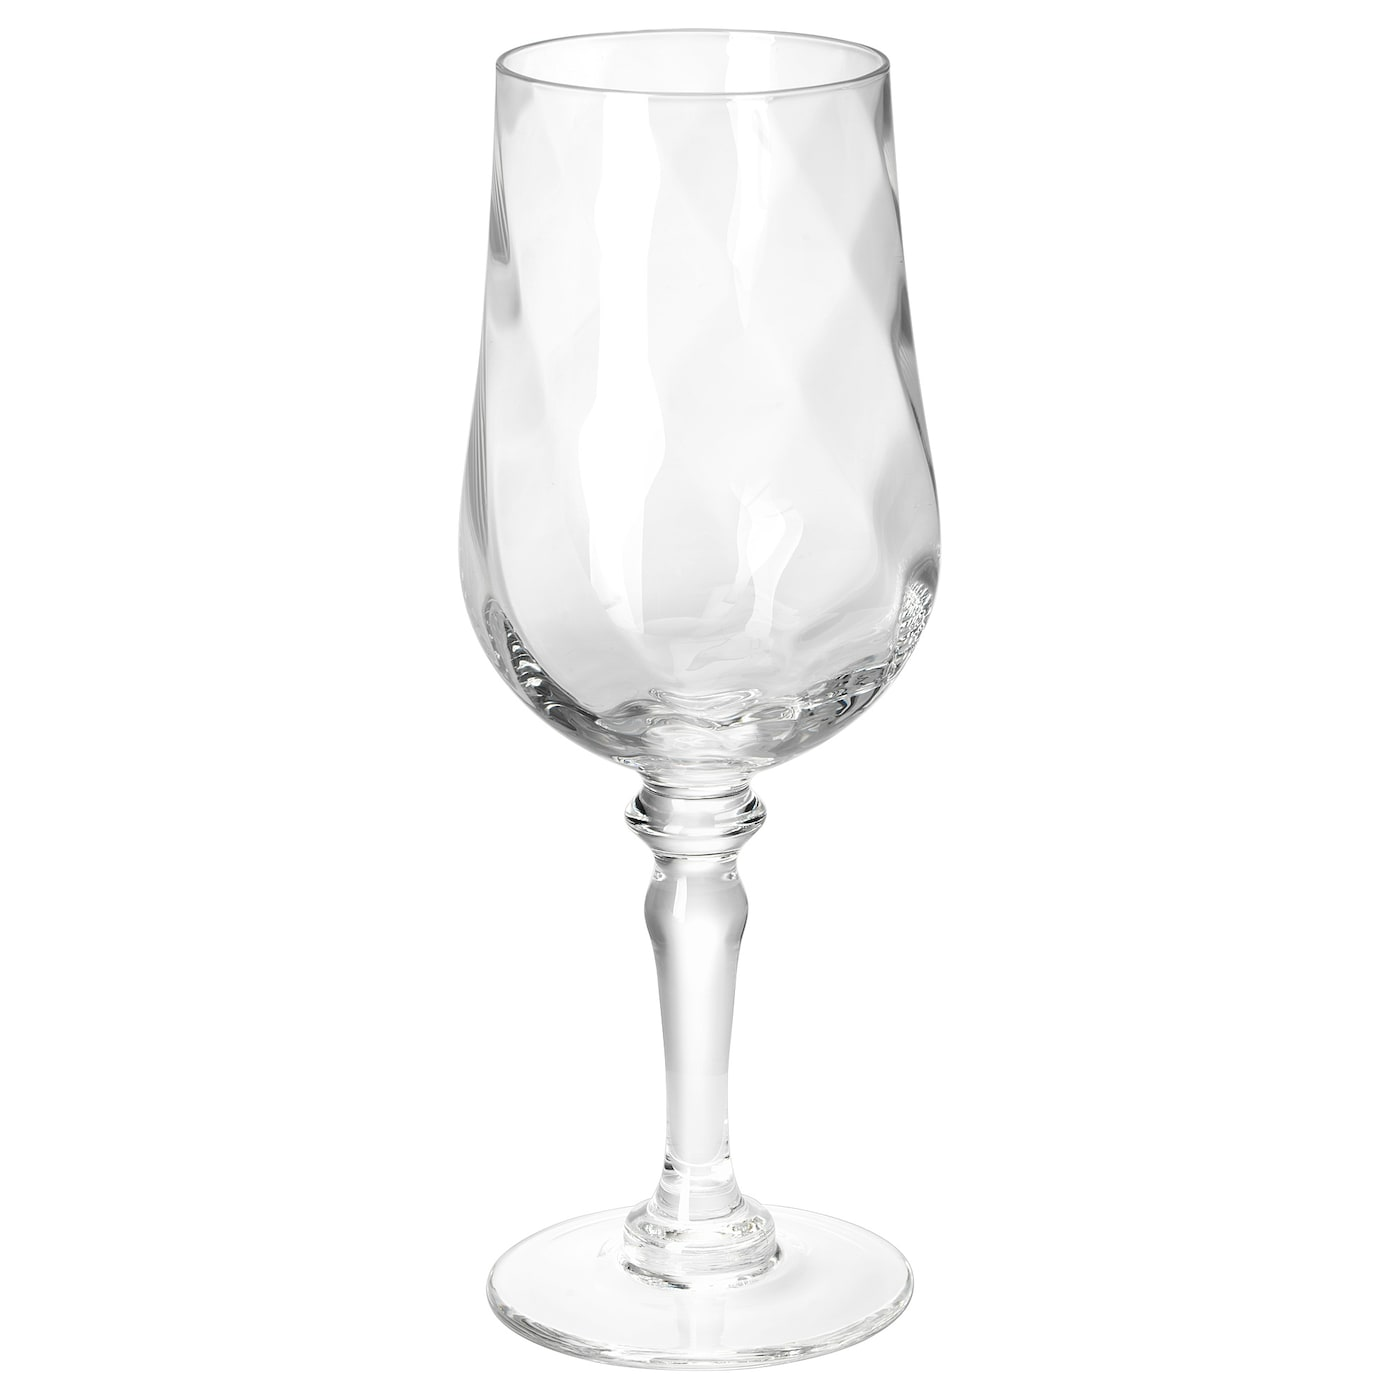 IKEA KONUNGSLIG wine glass Each glass has been mouthblown by a skilled craftsman.